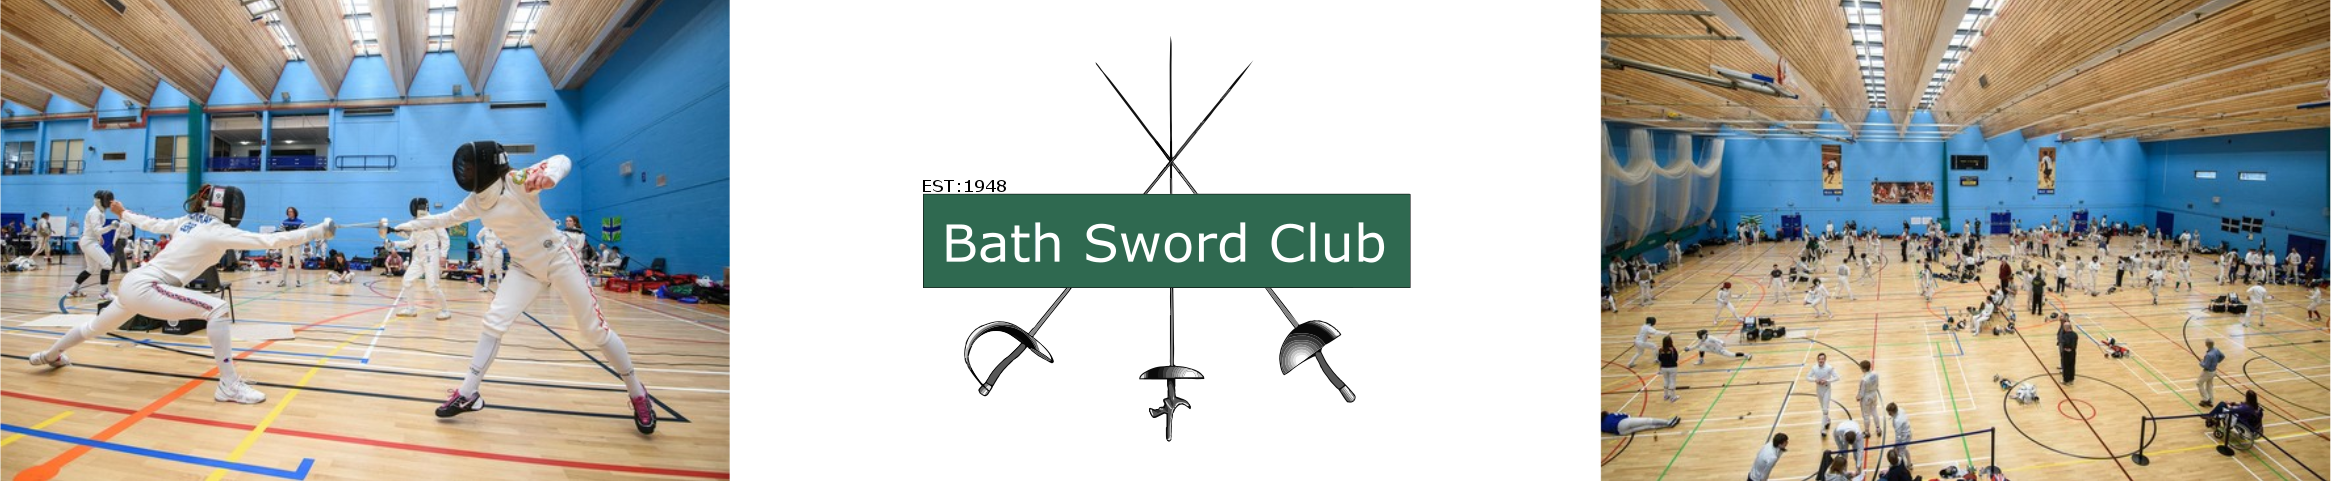 Bath Sword Club Banner